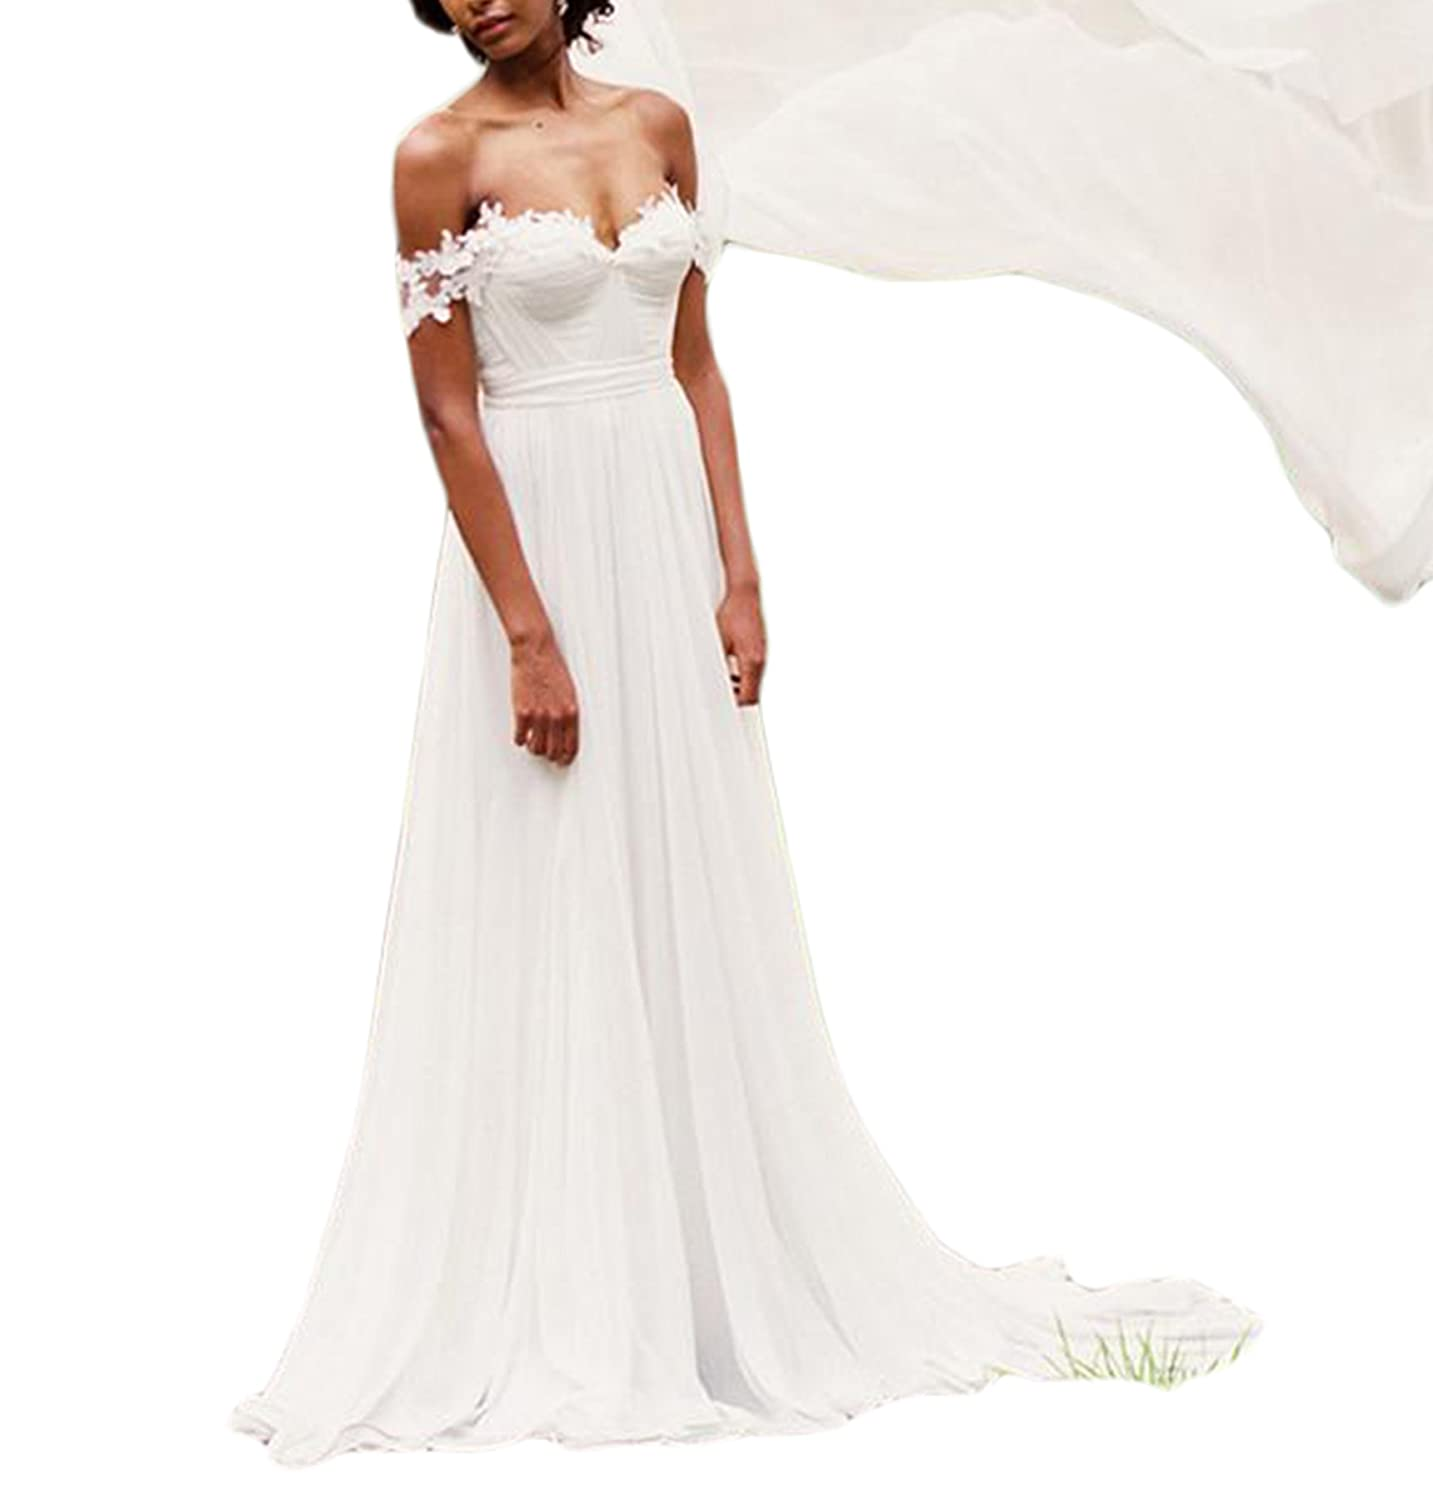 Vweil Country Rustic Vestidos de Novia Sexy Chiffon Lace Bridal Wedding Gowns Women VD62 at Amazon Womens Clothing store: